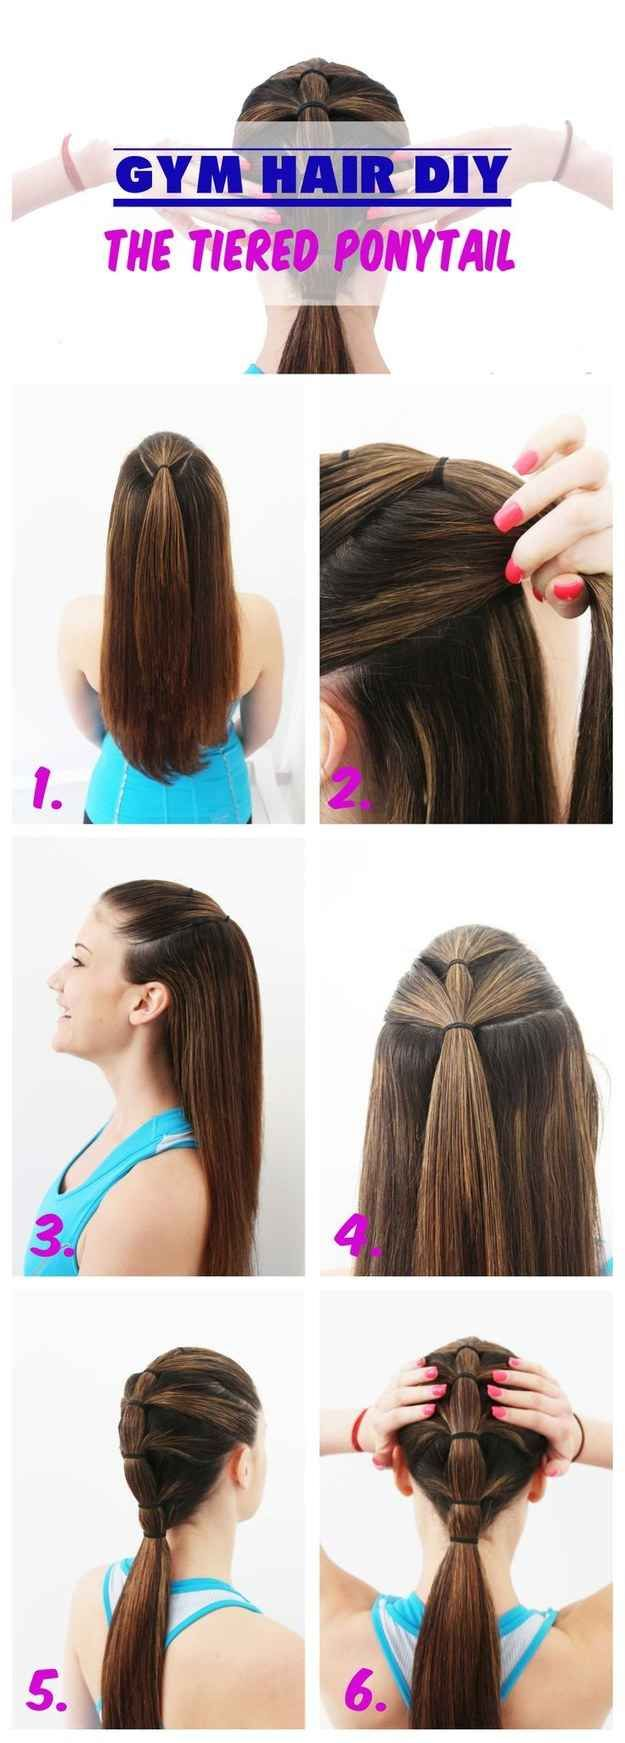 best curl up u dry images on pinterest hairstyles braids and